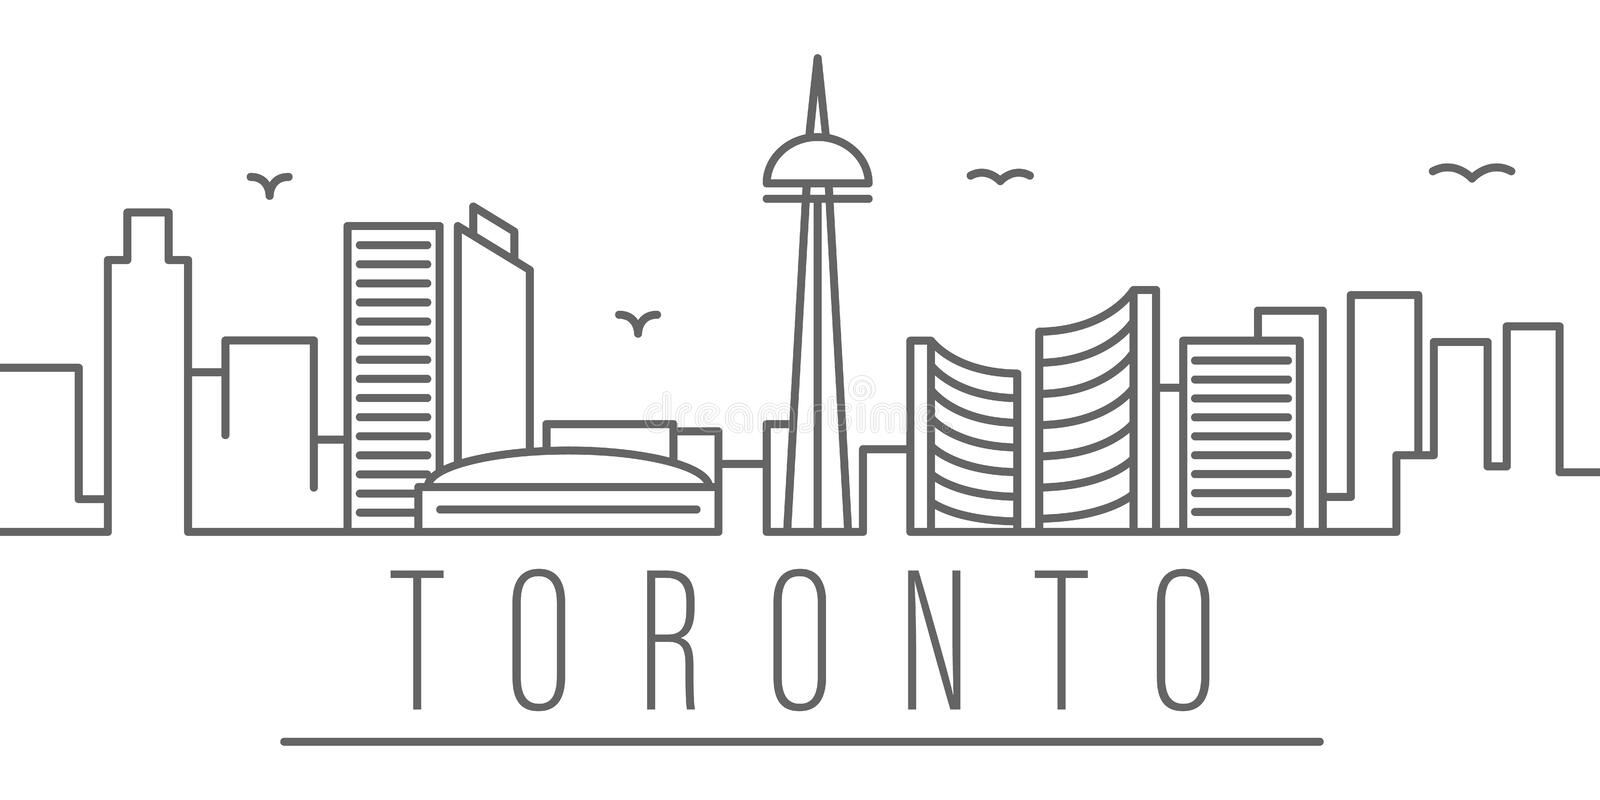 Toronto city outline icon. Elements of cities and countries illustration icon. Signs and symbols can be used for web, logo, mobile vector illustration